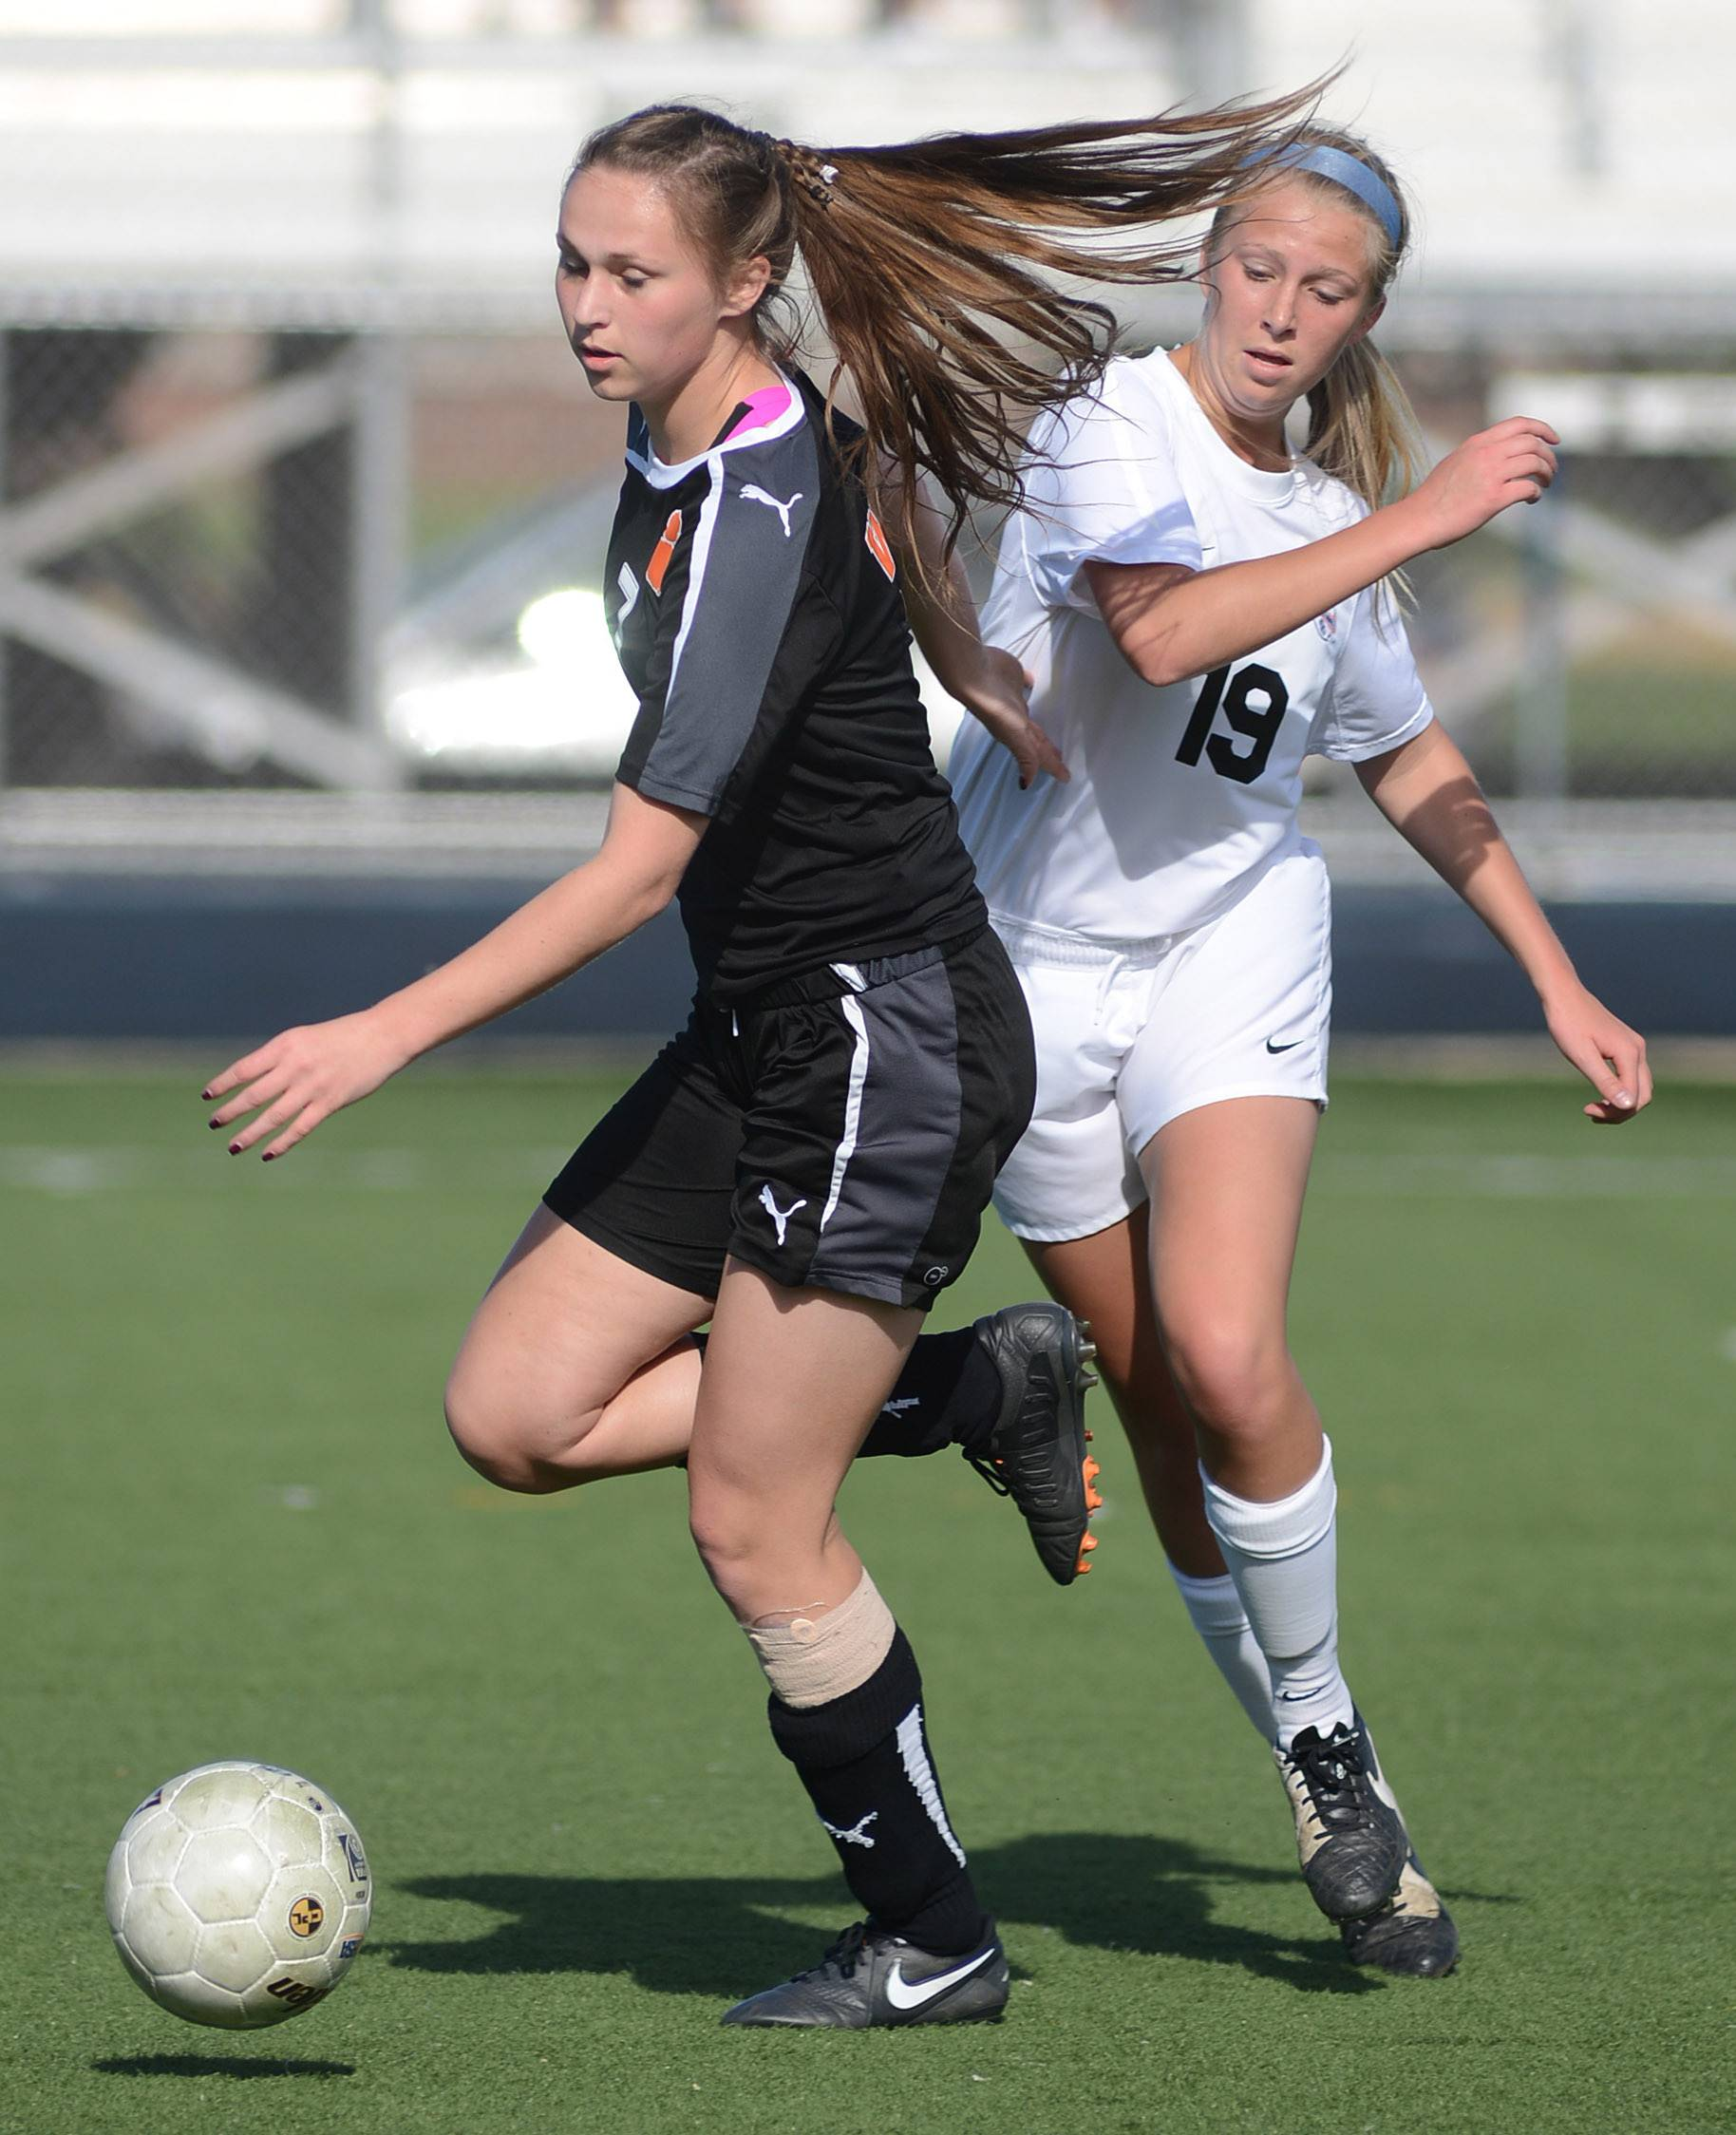 Wheaton Warrenville South's Alexis Jakuszewski and St. Charles East's Sophie Jendrzeczyk battle for the ball in the first half of the regional title game at West Chicago High School on Friday, May 23.